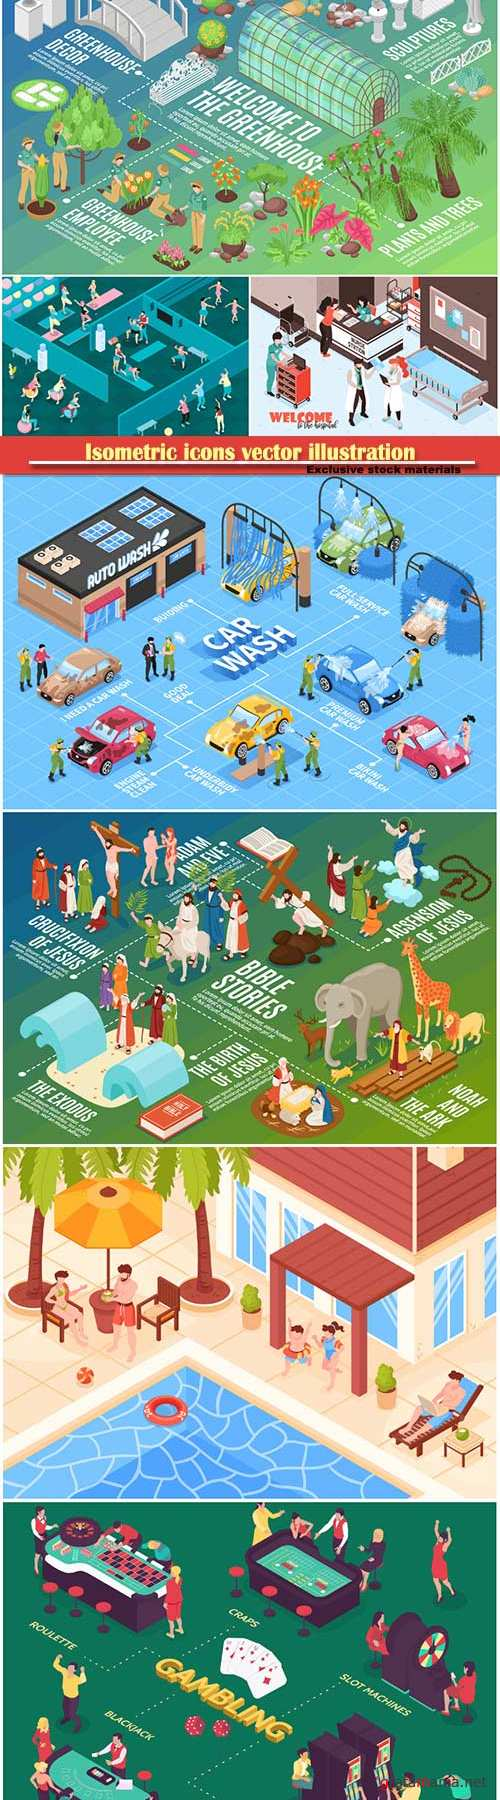 Isometric icons vector illustration, banner design template # 37